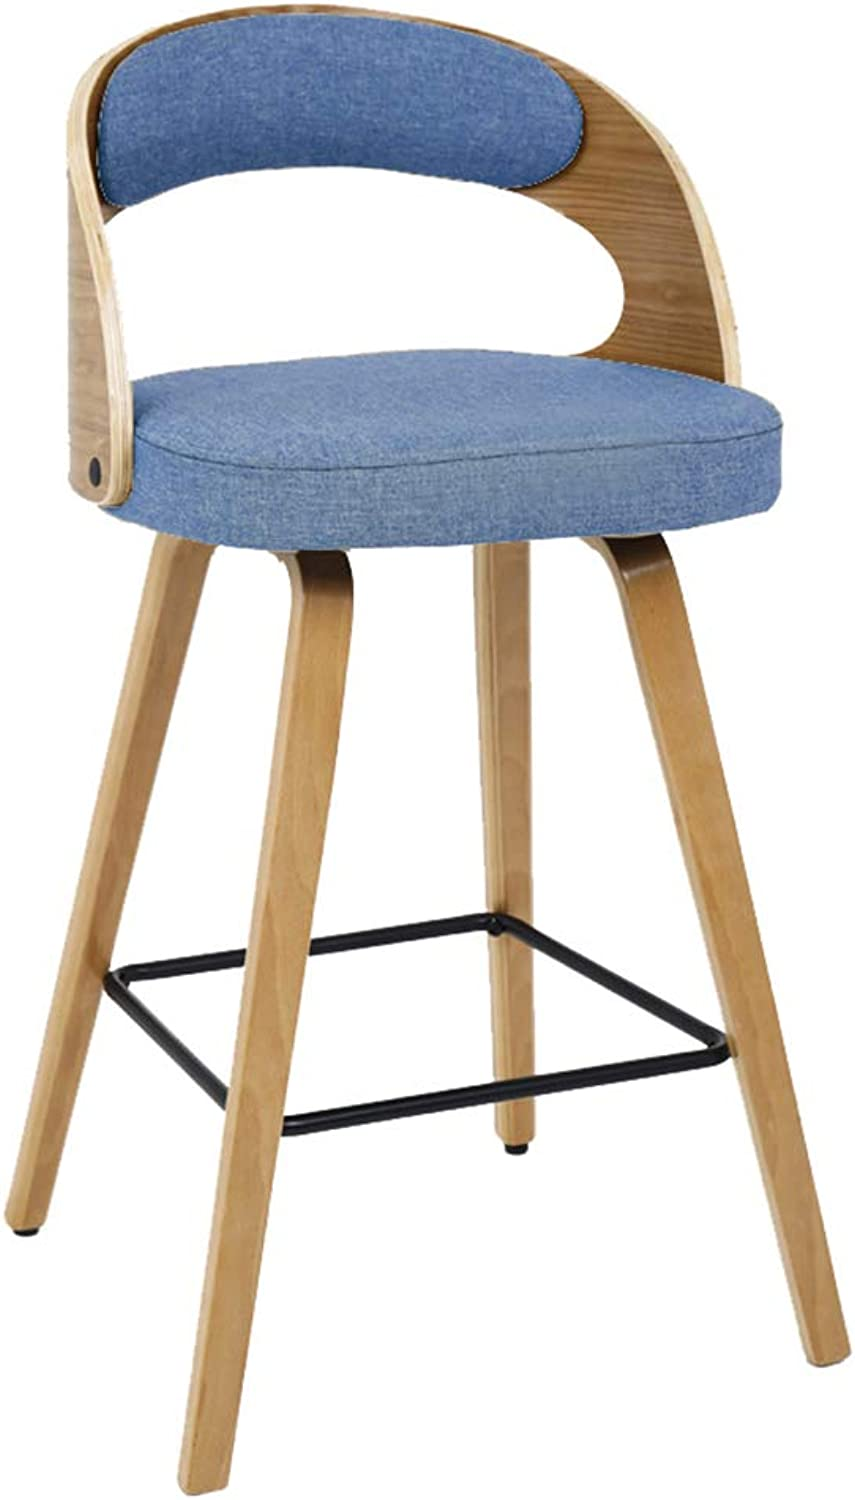 CAIJUN Wooden Bar Stool Multipurpose Thick Cotton Cushion with Backrest Breathable Leisure Simple, 9 colors, 70cm High Dual-use (color   A, Size   48x48x99cm)